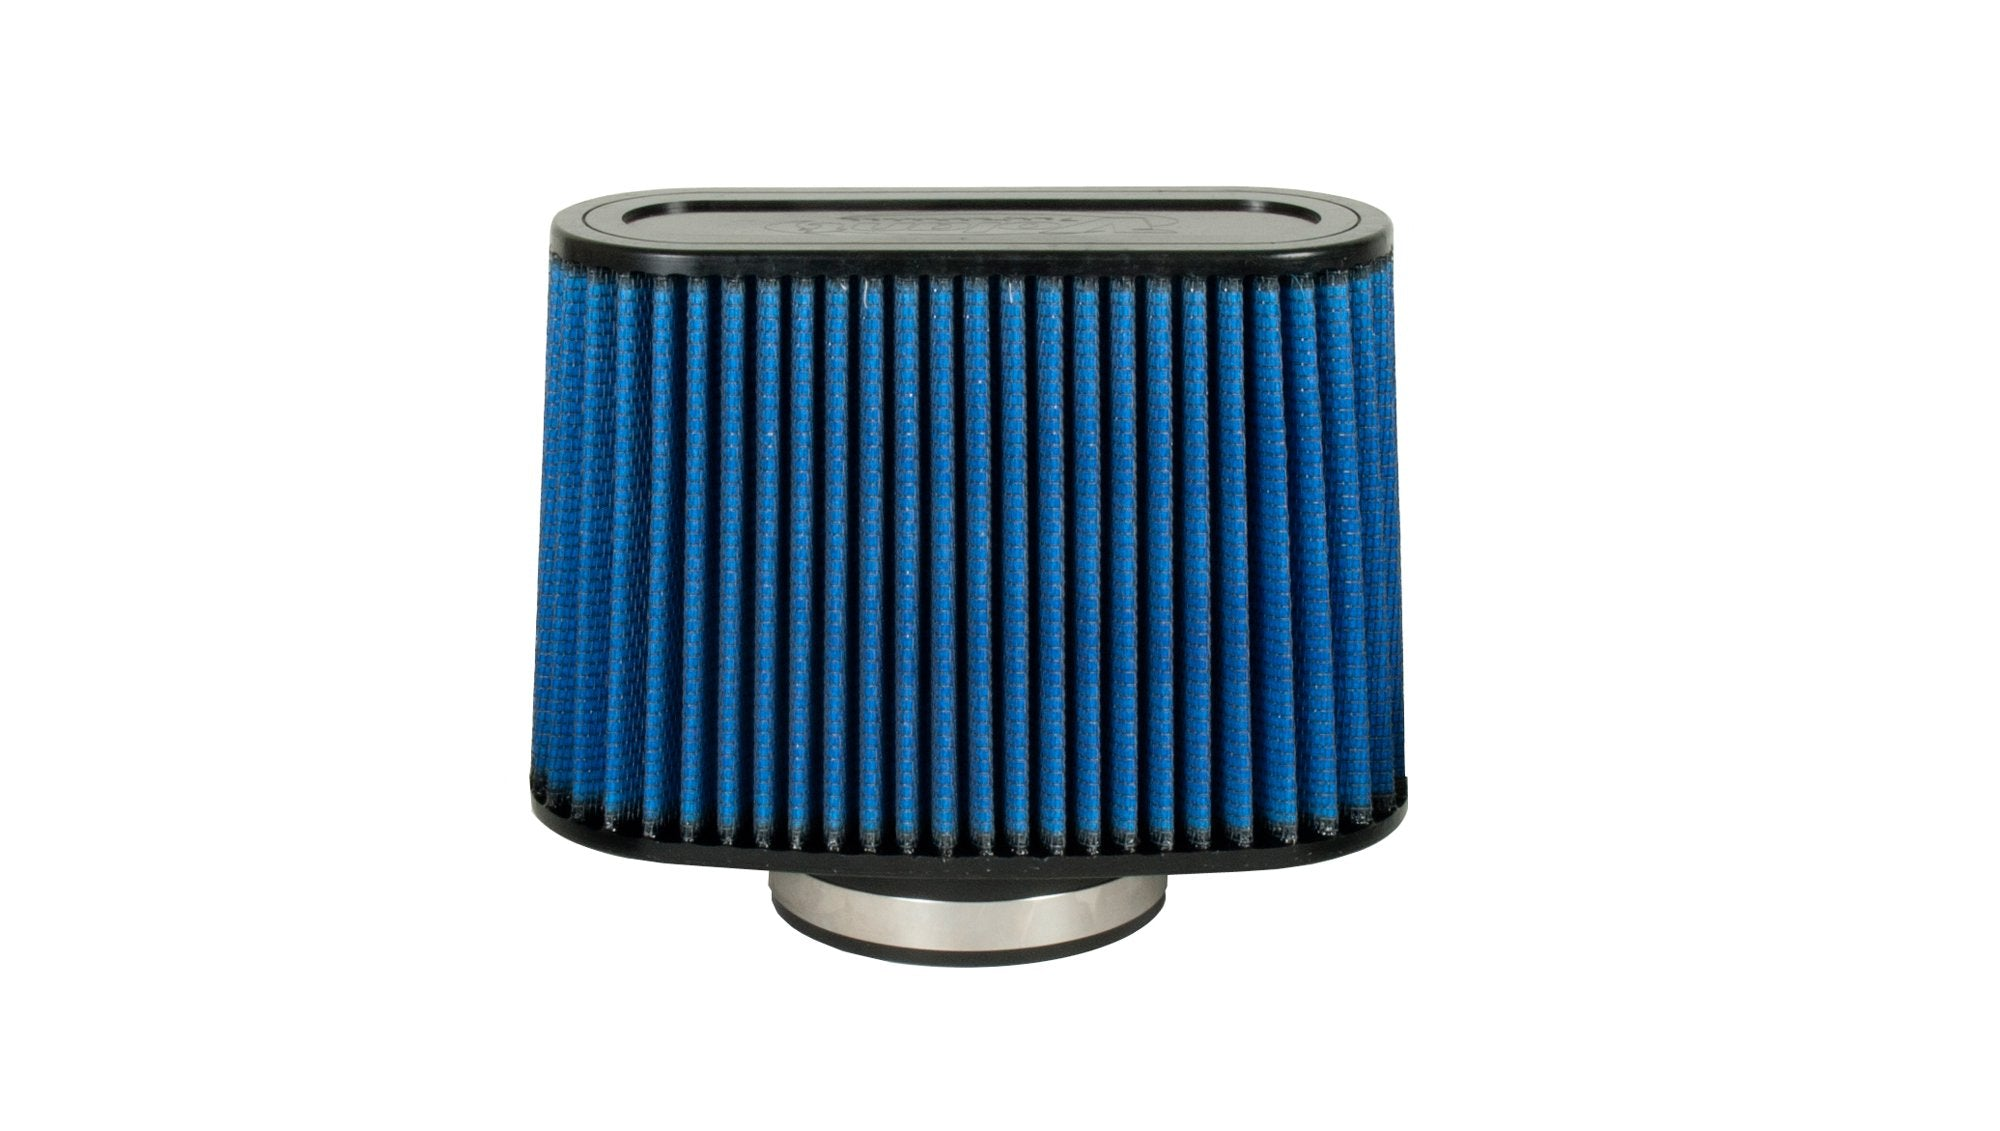 1996-2000 Chevrolet C2500, C3500, K2500 and K3500 Oiled Air Intake Air Filter - 5123